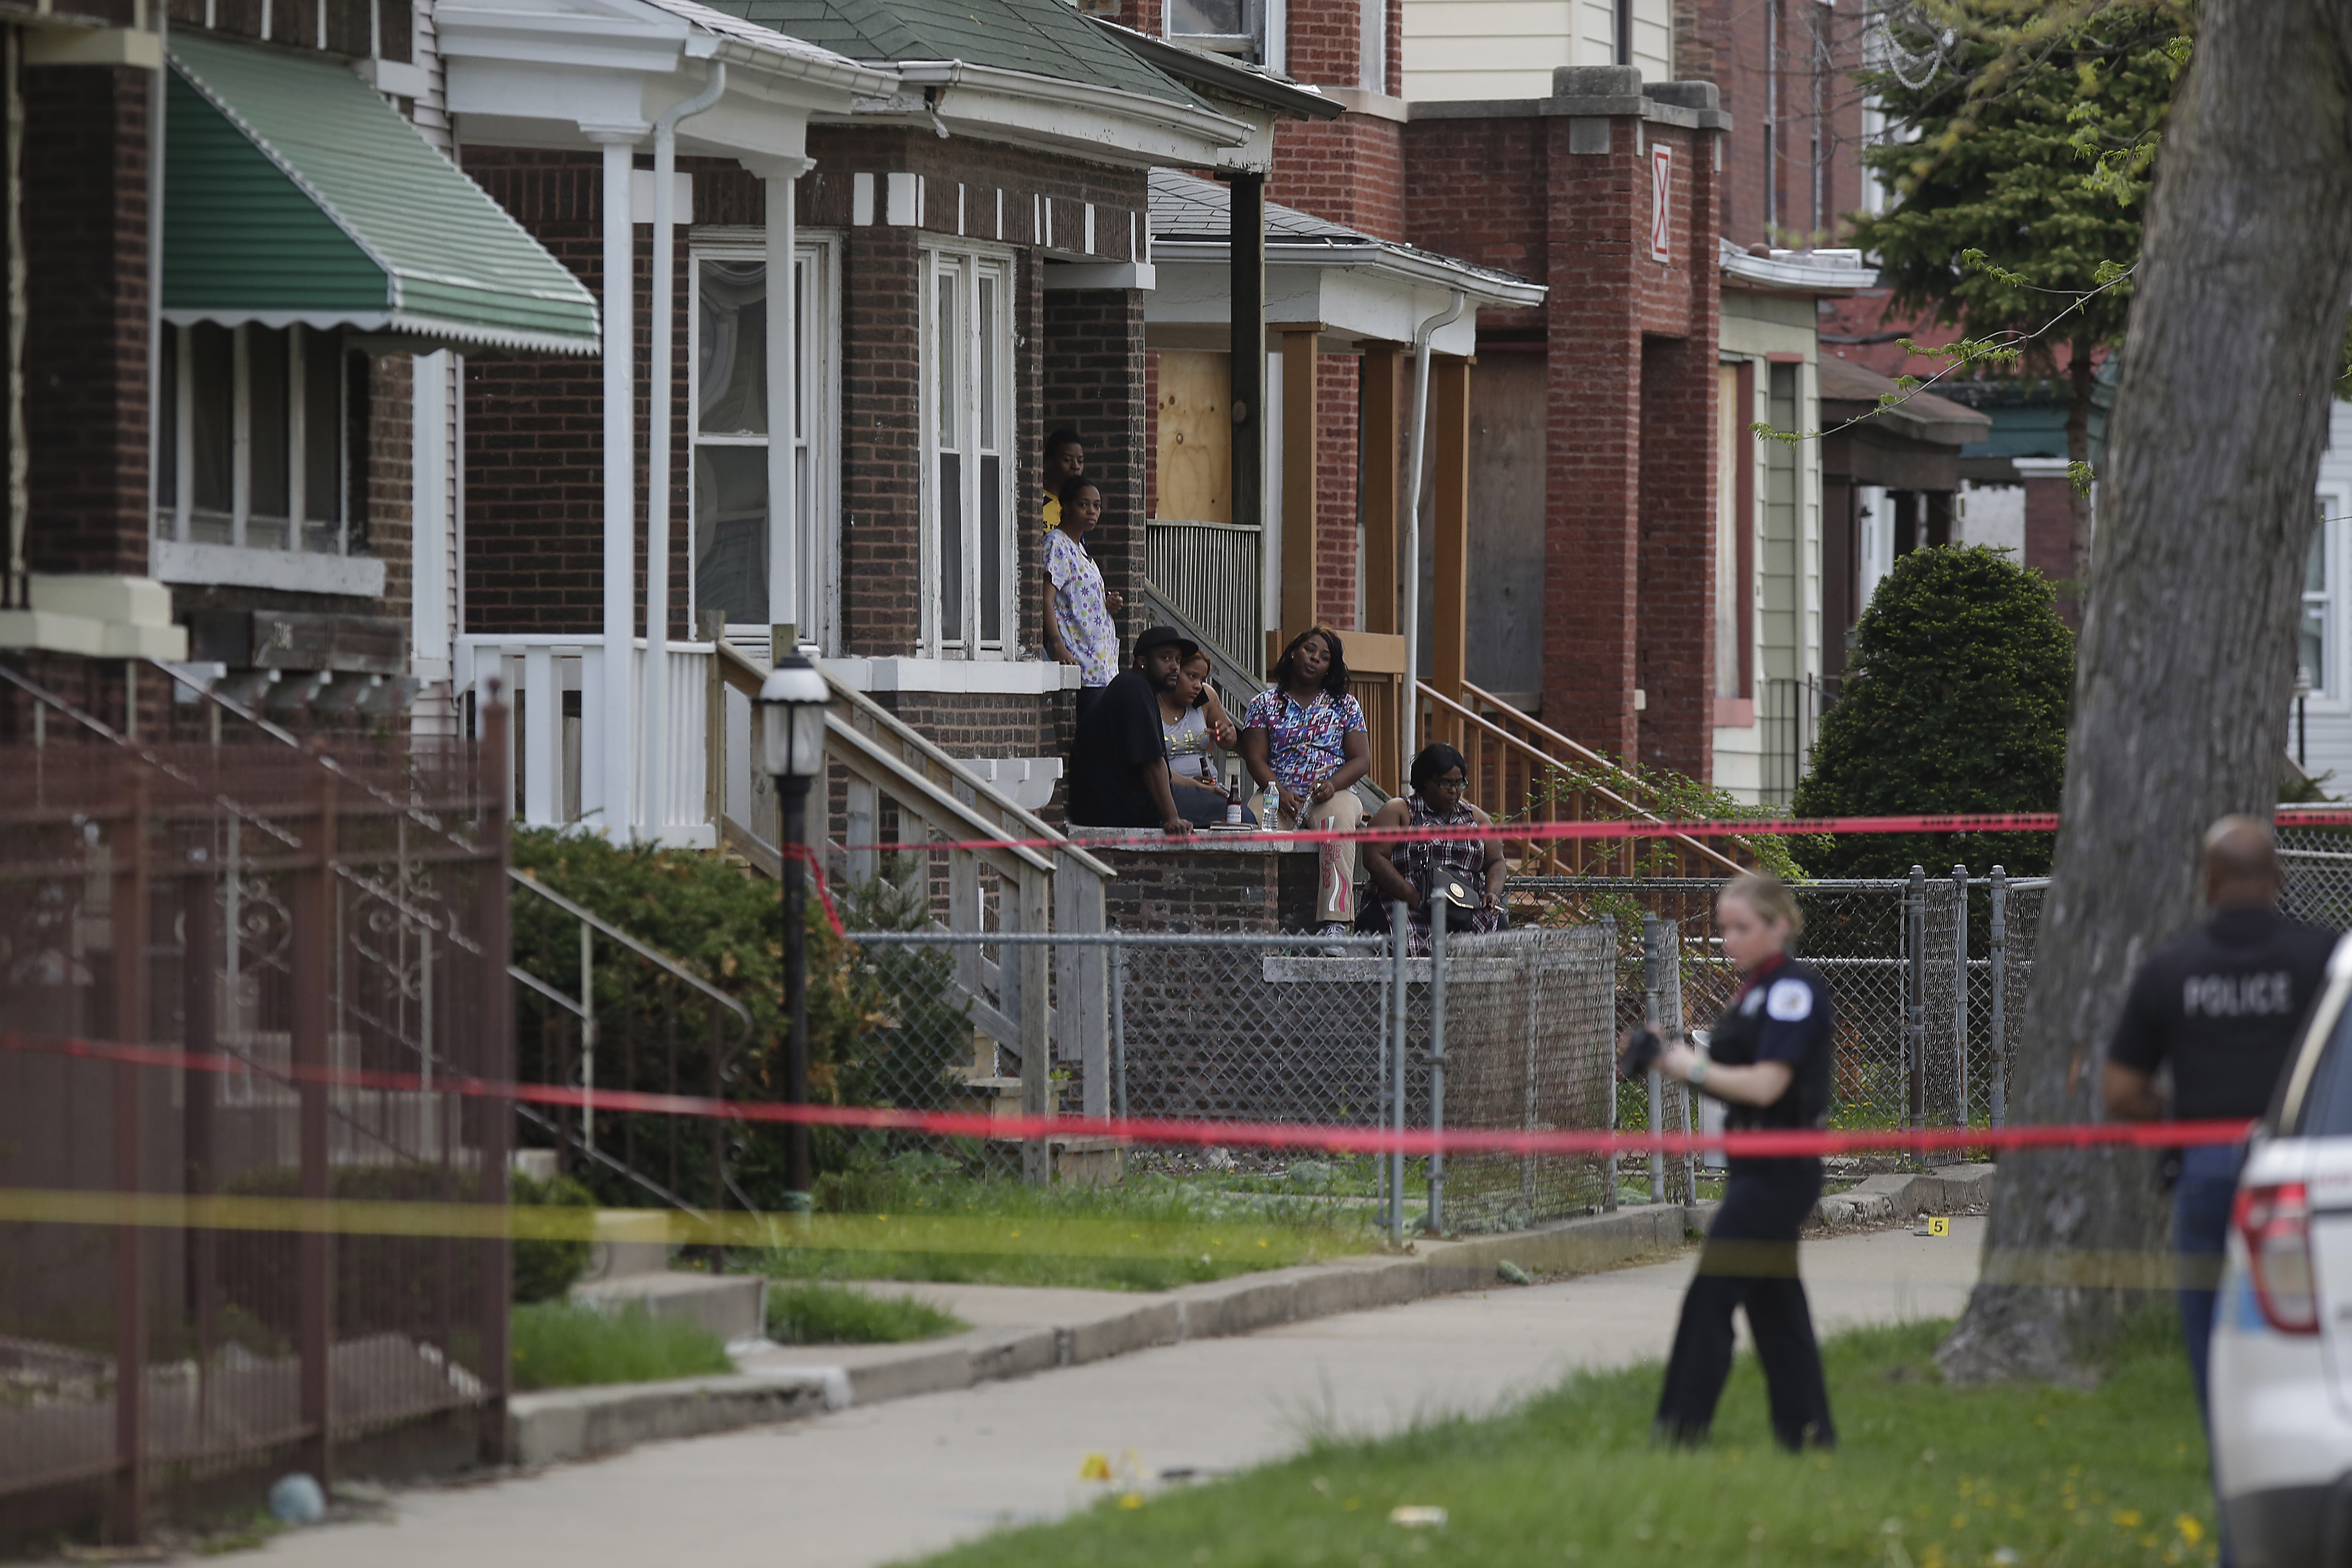 CHICAGO, IL - APRIL 25: People sitting on the front steps of a home watch as a Chicago Police evidence technician investigates the scene where a 16-year-old boy was shot in the head and killed and another 18-year-old man was shot and wounded on the 7300 block of South Sangamon Street on April 25, 2016 in Chicago, Illinois. Last week Chicago reached over 1,000 people shot since the beginning of the year. (Photo by Joshua Lott/Getty Images)